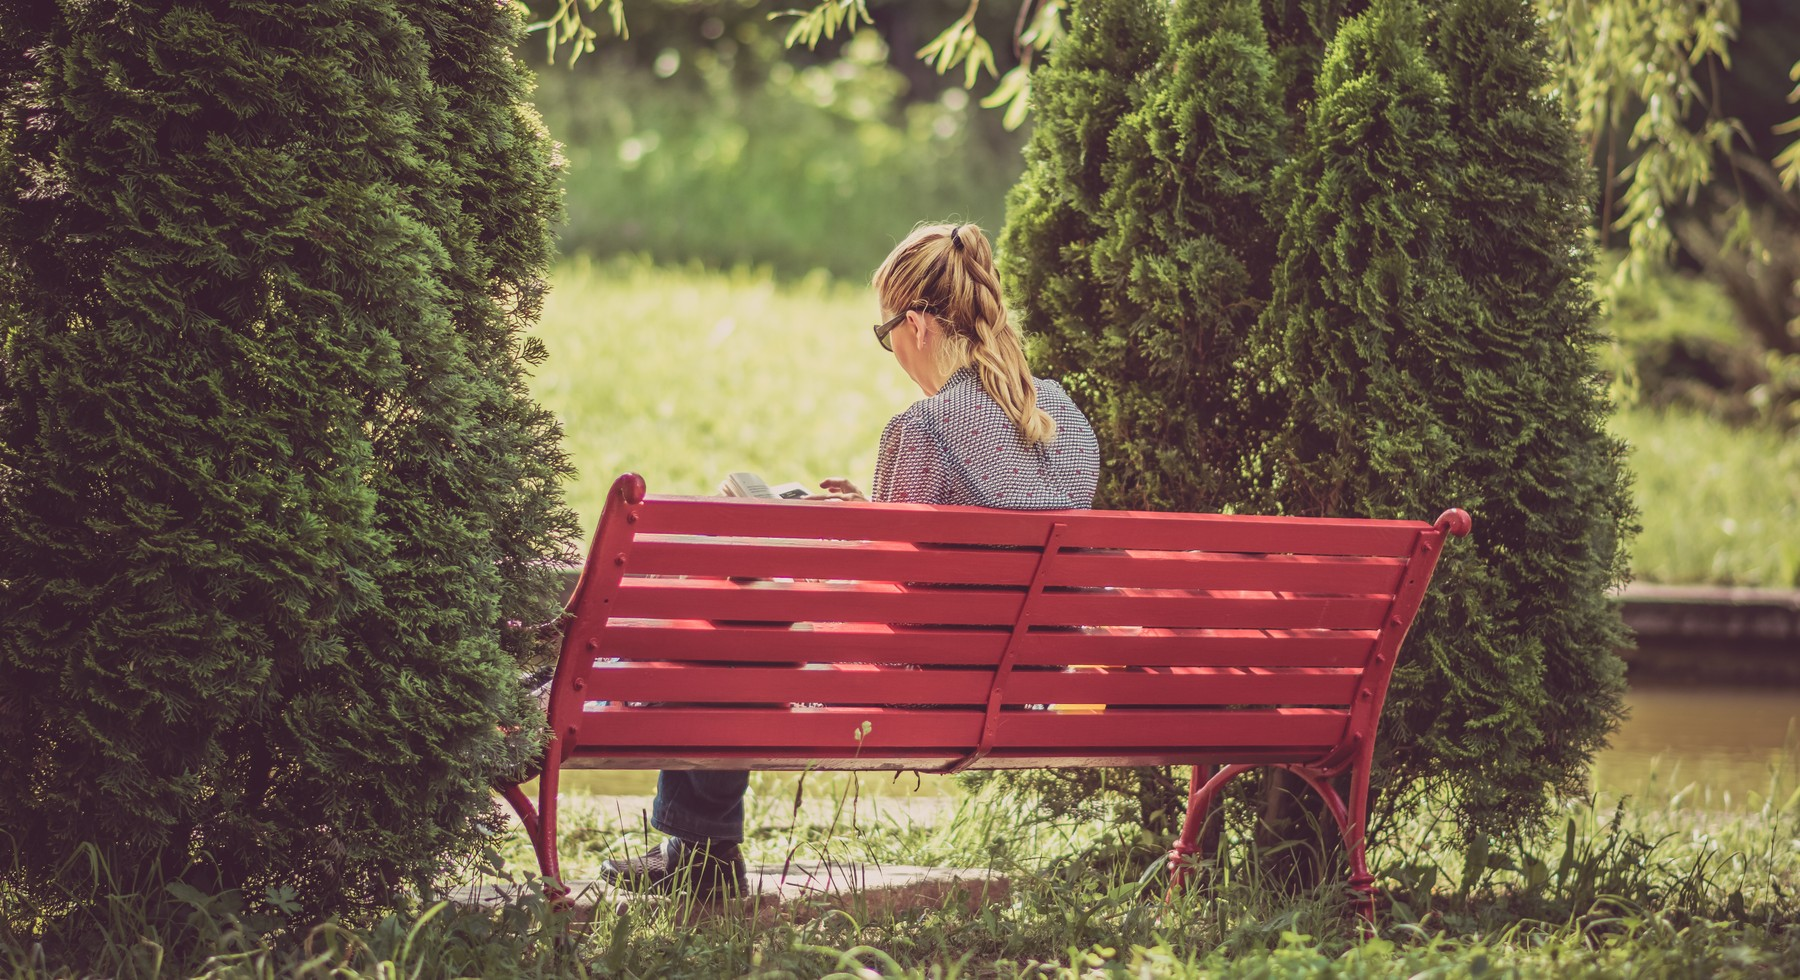 Lady sitting on a bench, reading a book